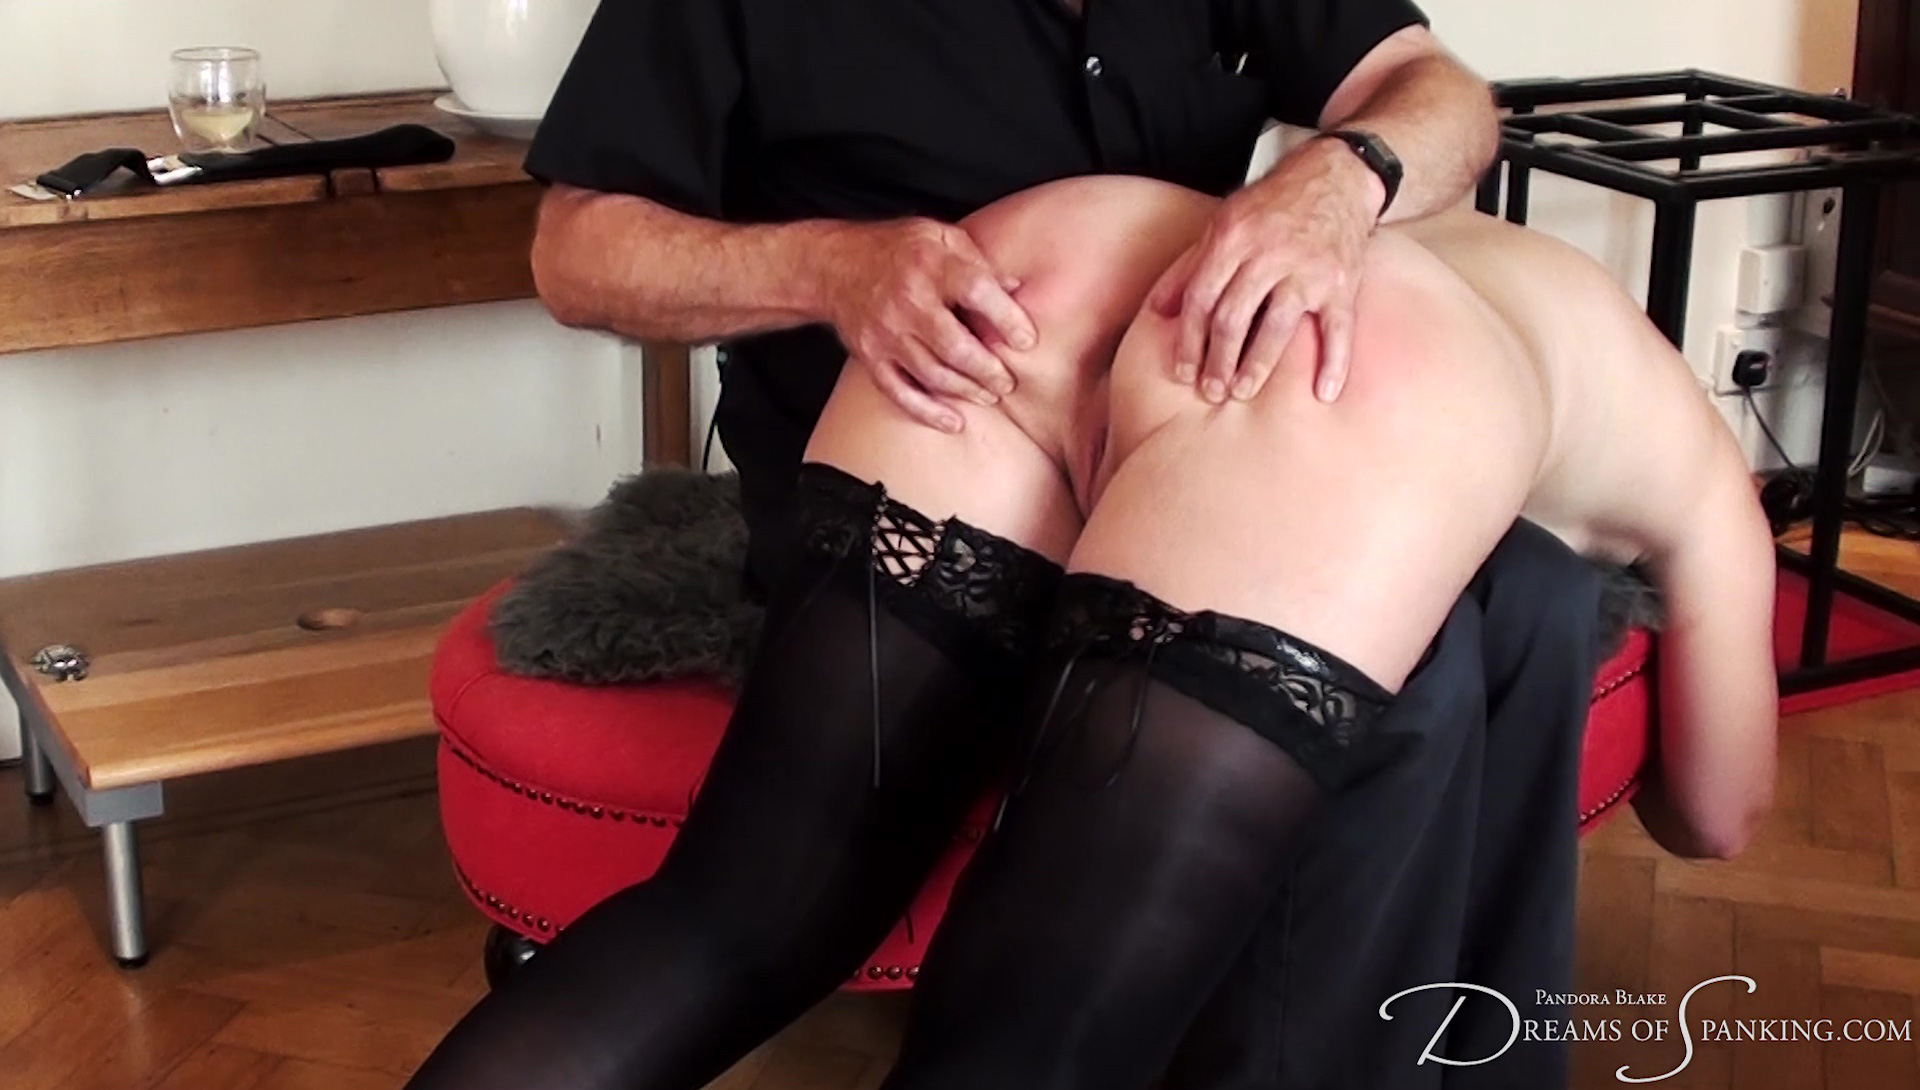 Pandora receives a sensual hand spanking at Dreams of Spanking